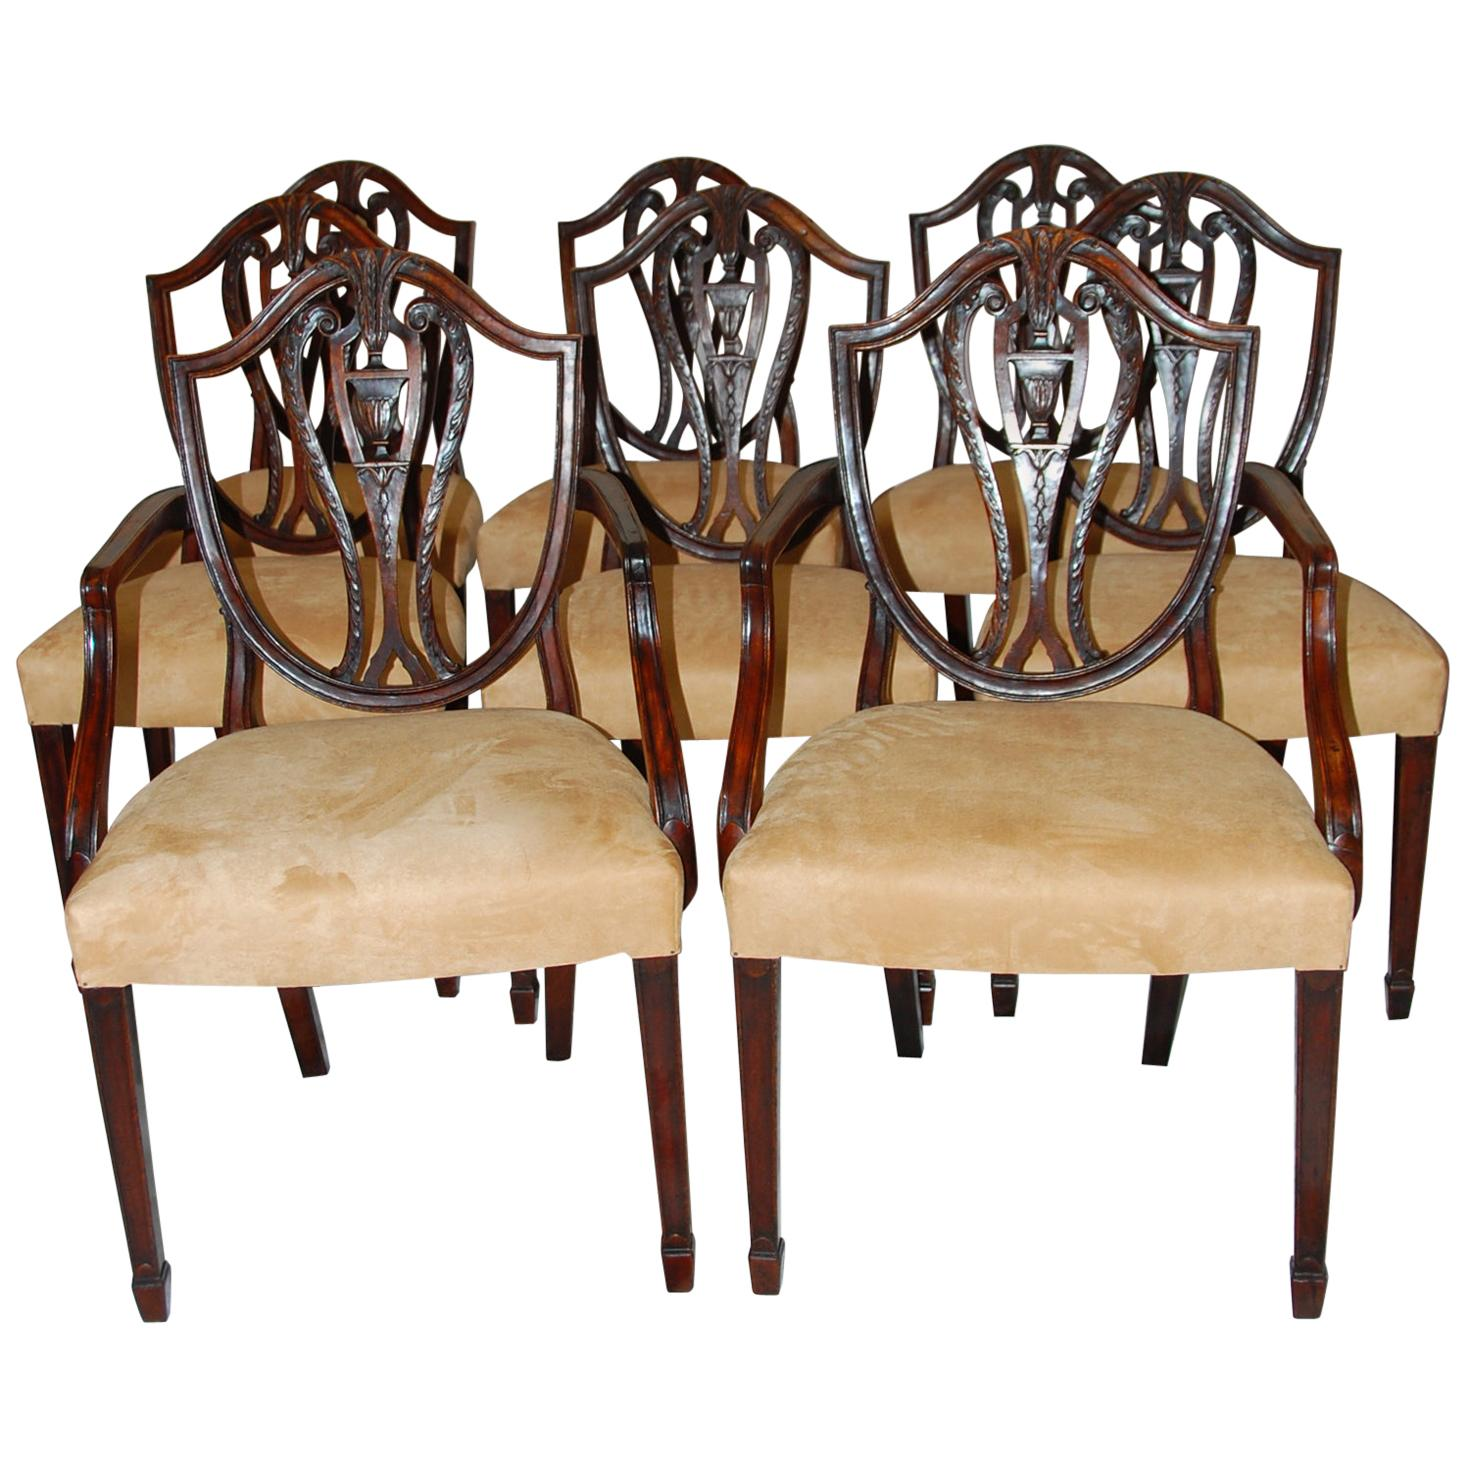 English Early 19th Century Hepplewhite Shieldback Dining Chairs, Set of Eight